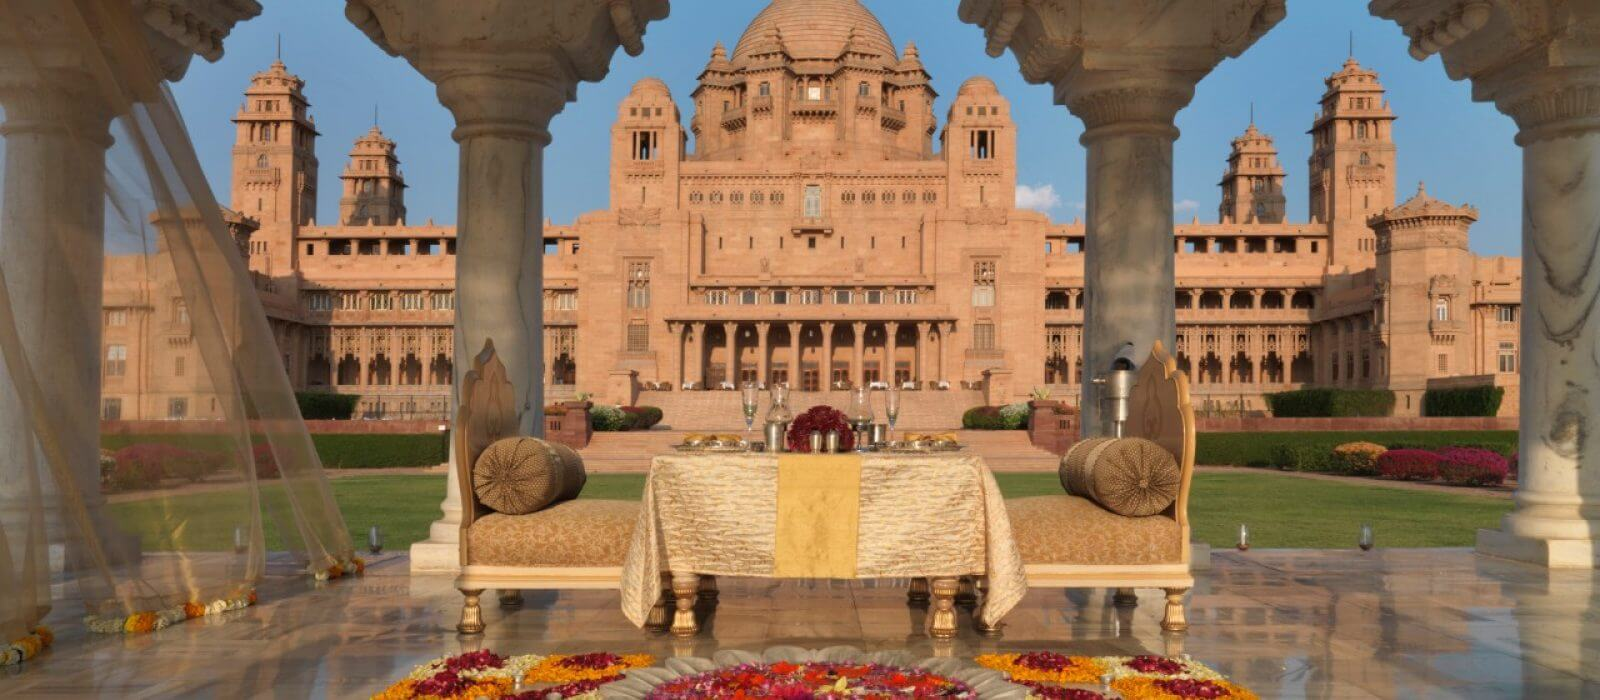 Jodhpur travel information : Taj Umaid Bhawan Palace